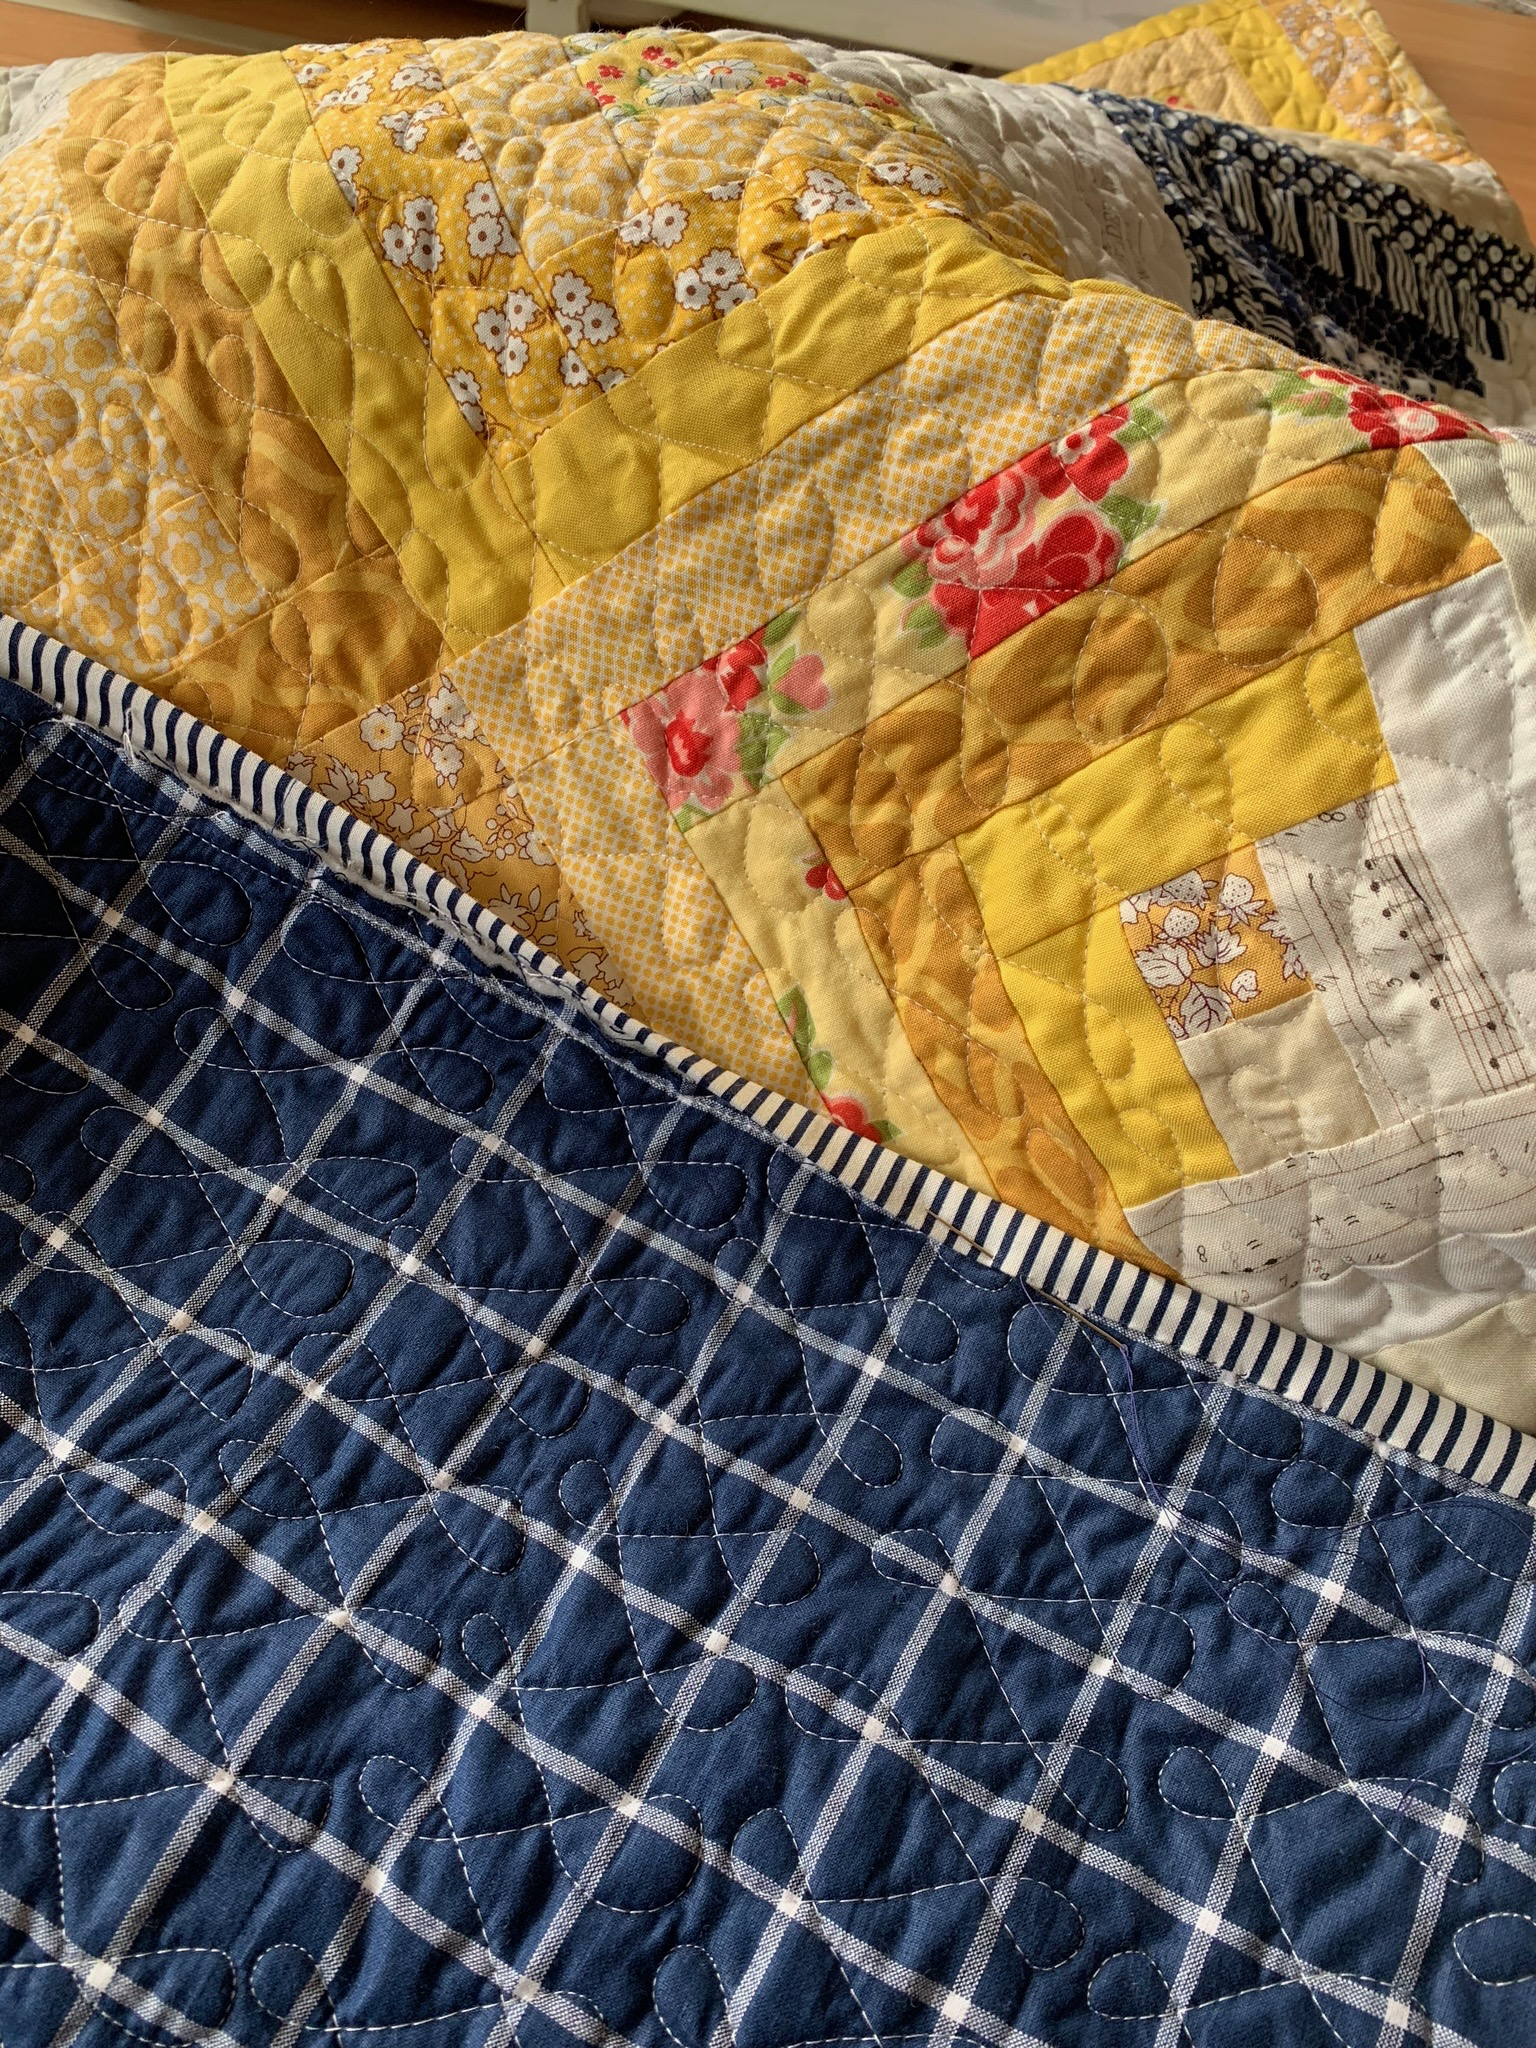 Quilting the Sweet escape quilt.jpg